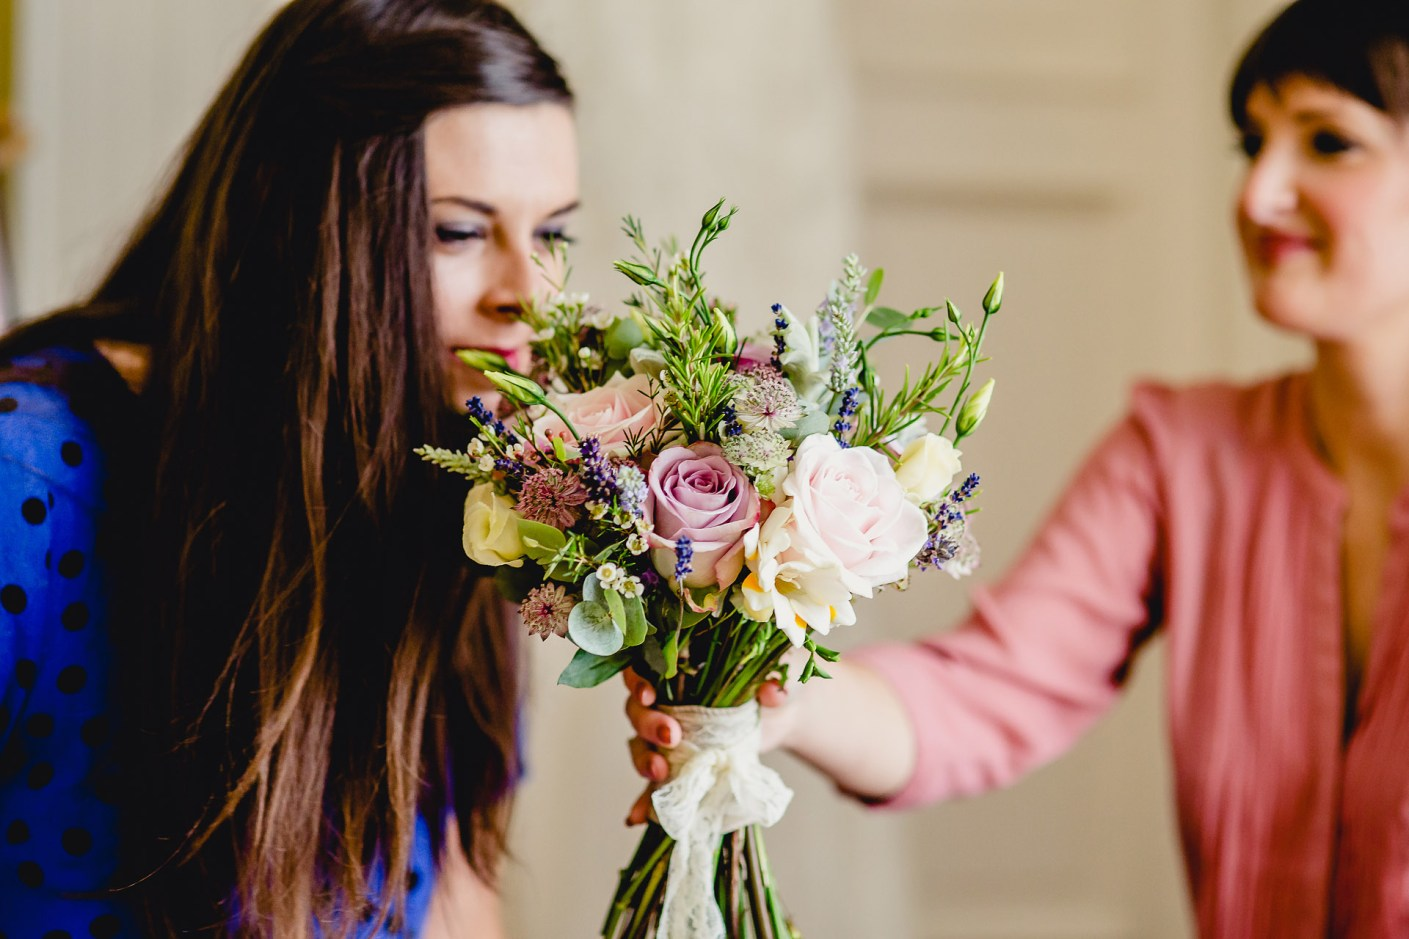 photographs of the bridesmaid smelling the boquet